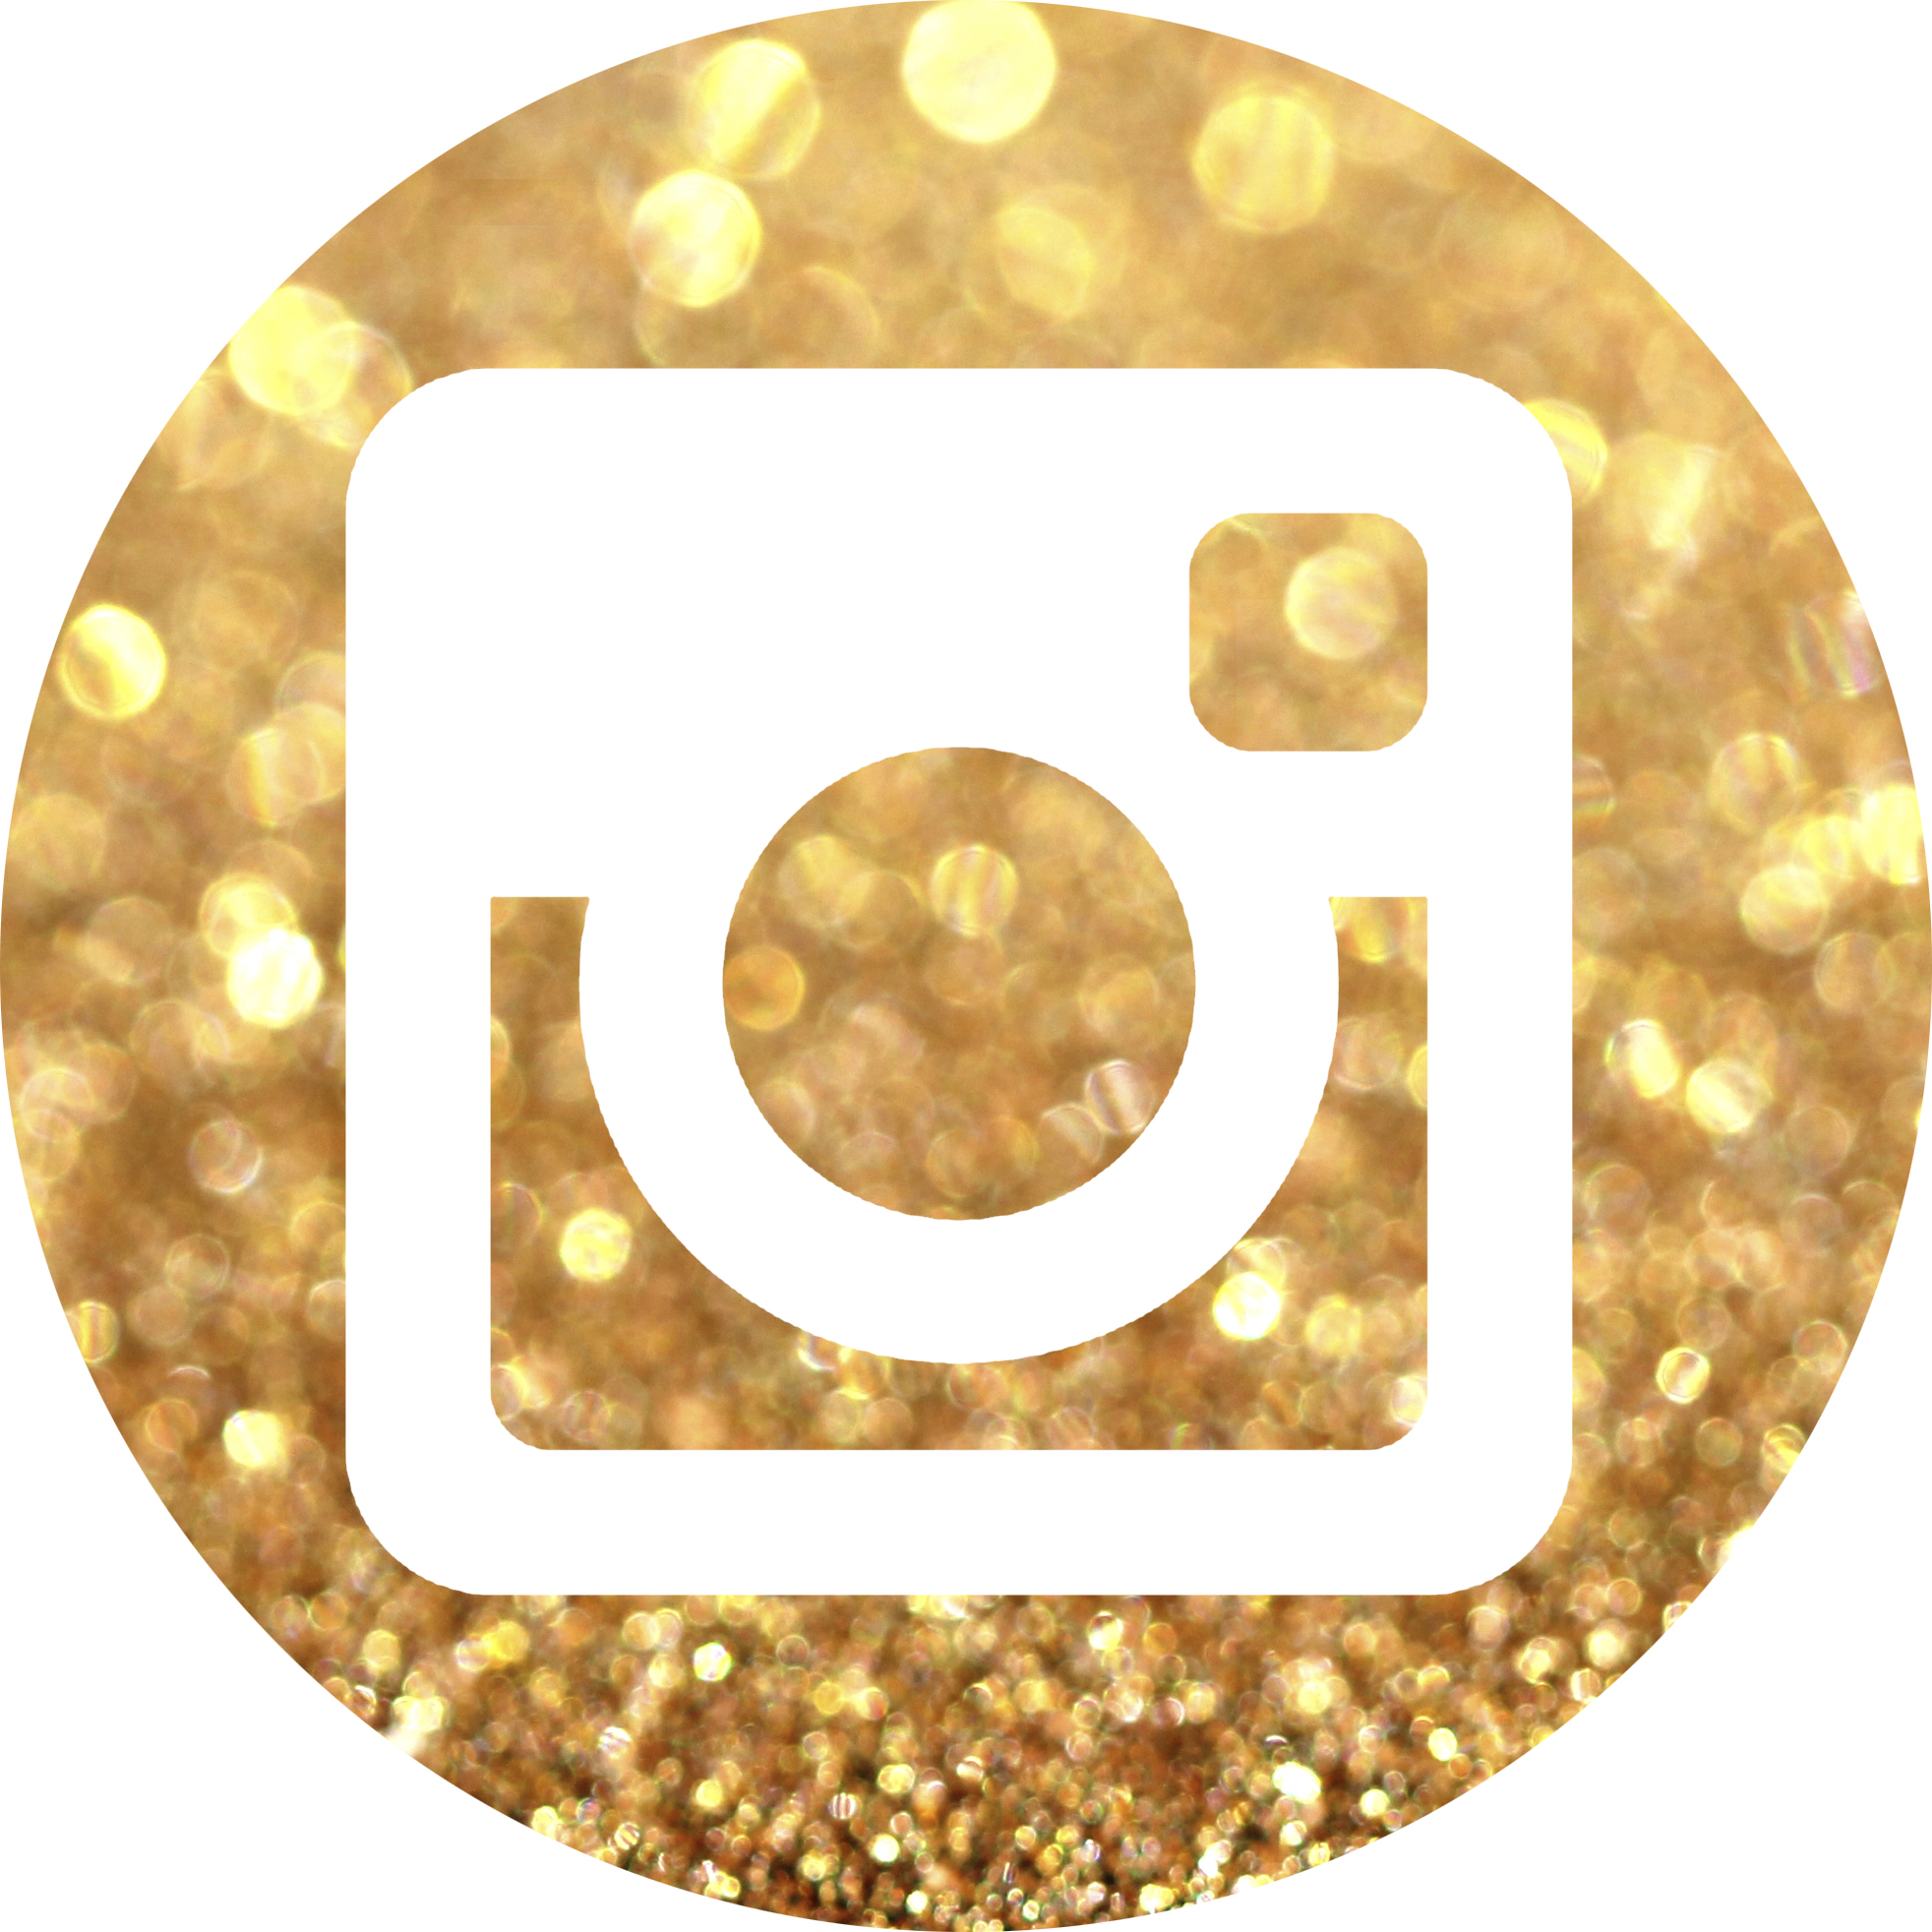 Glitter_Social Media Icons_INstagram.jpg